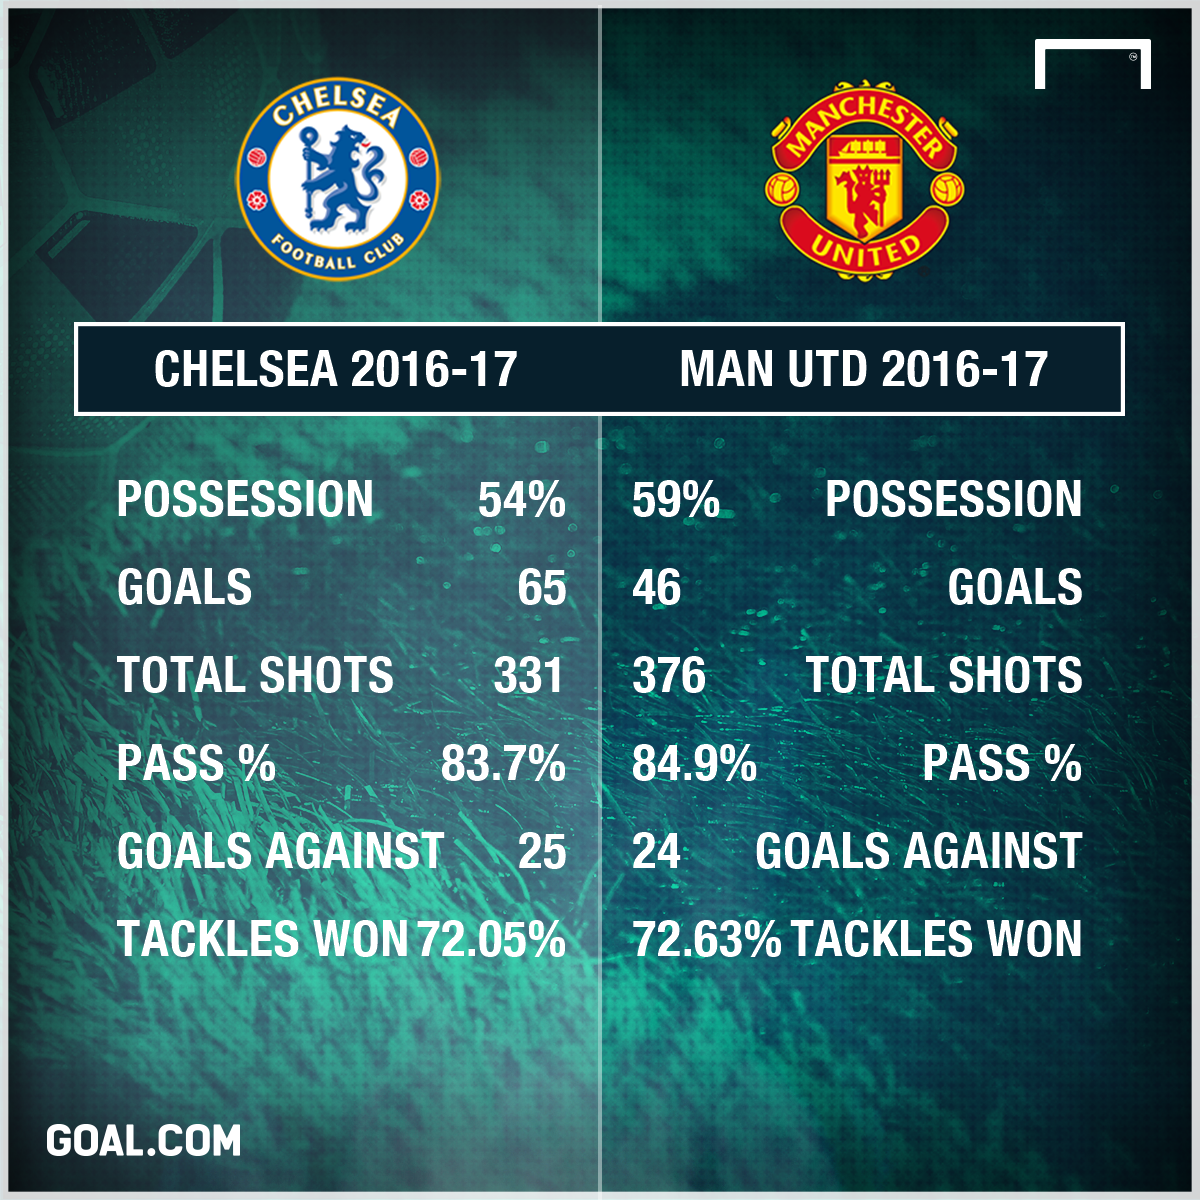 What Man Utd Need To Do To Reach Chelsea S Level And Win The Premier League Next Season Goal Com